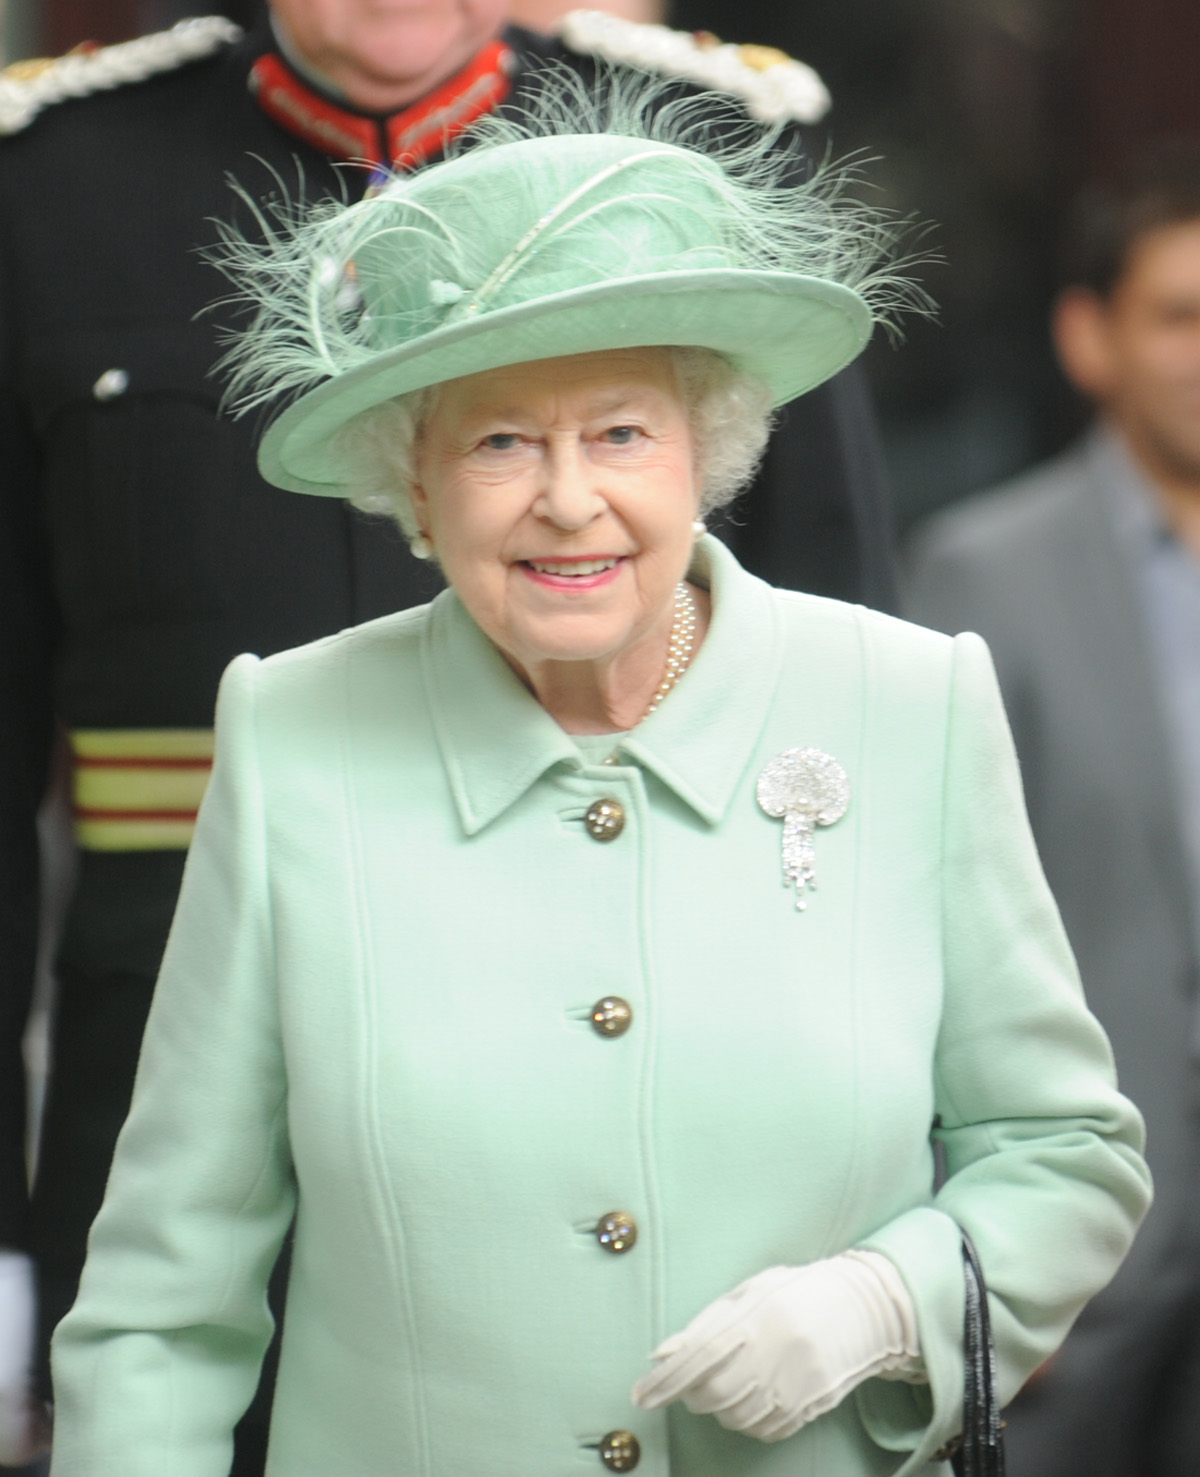 The Queen set to visit Blackburn to distribute 'Maundy Money'